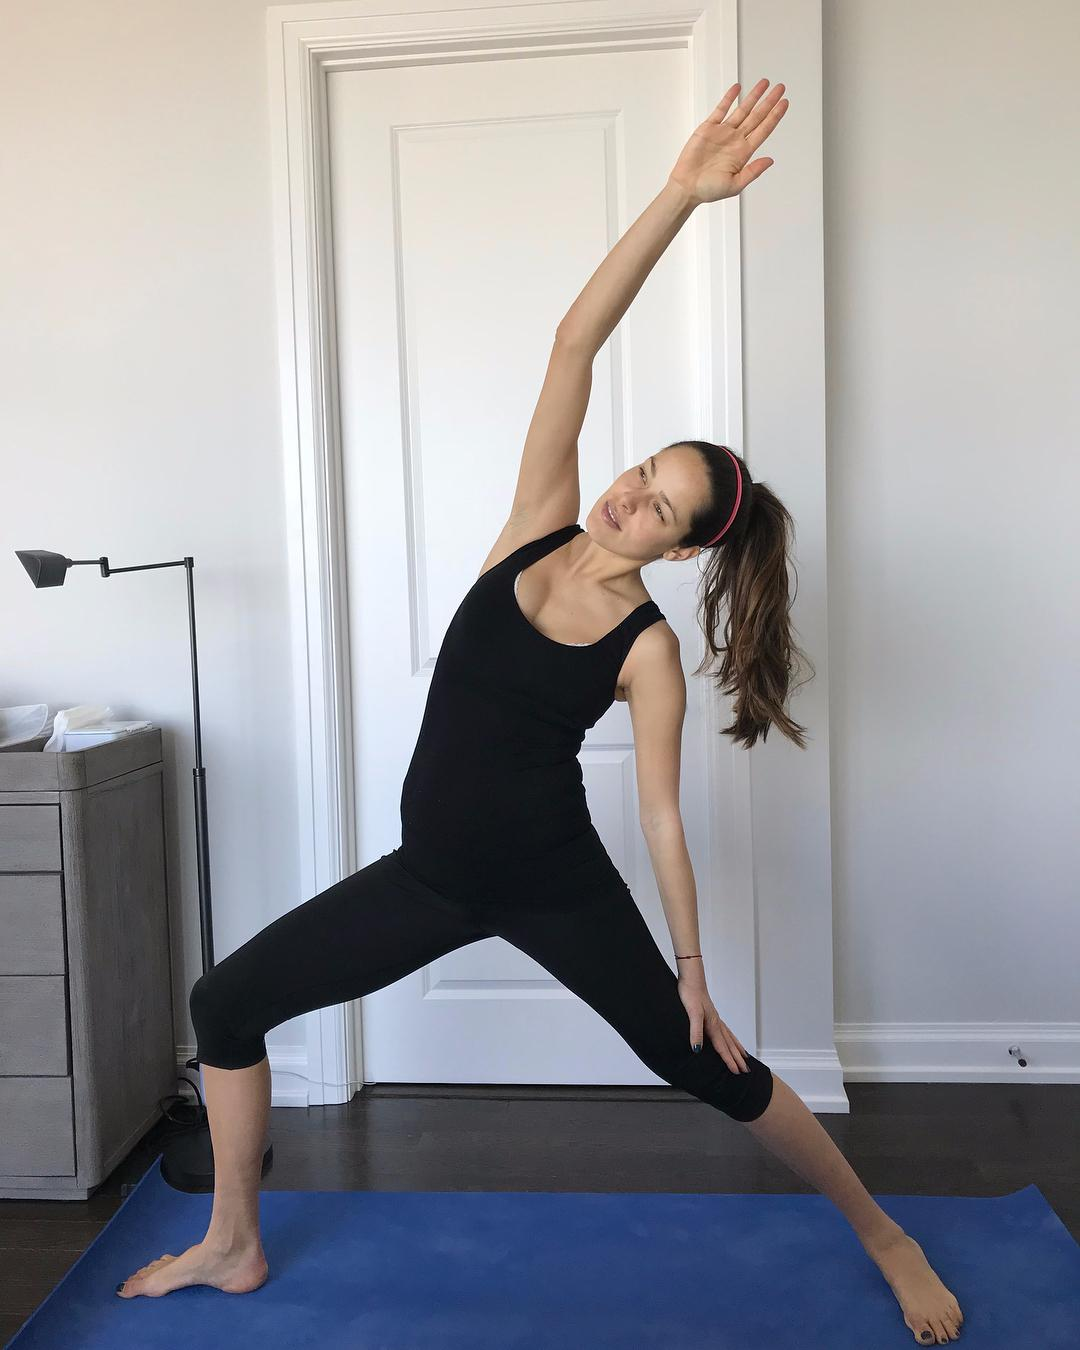 Ana Ivanovic does a yoga stretch just weeks after giving birth to son Luka